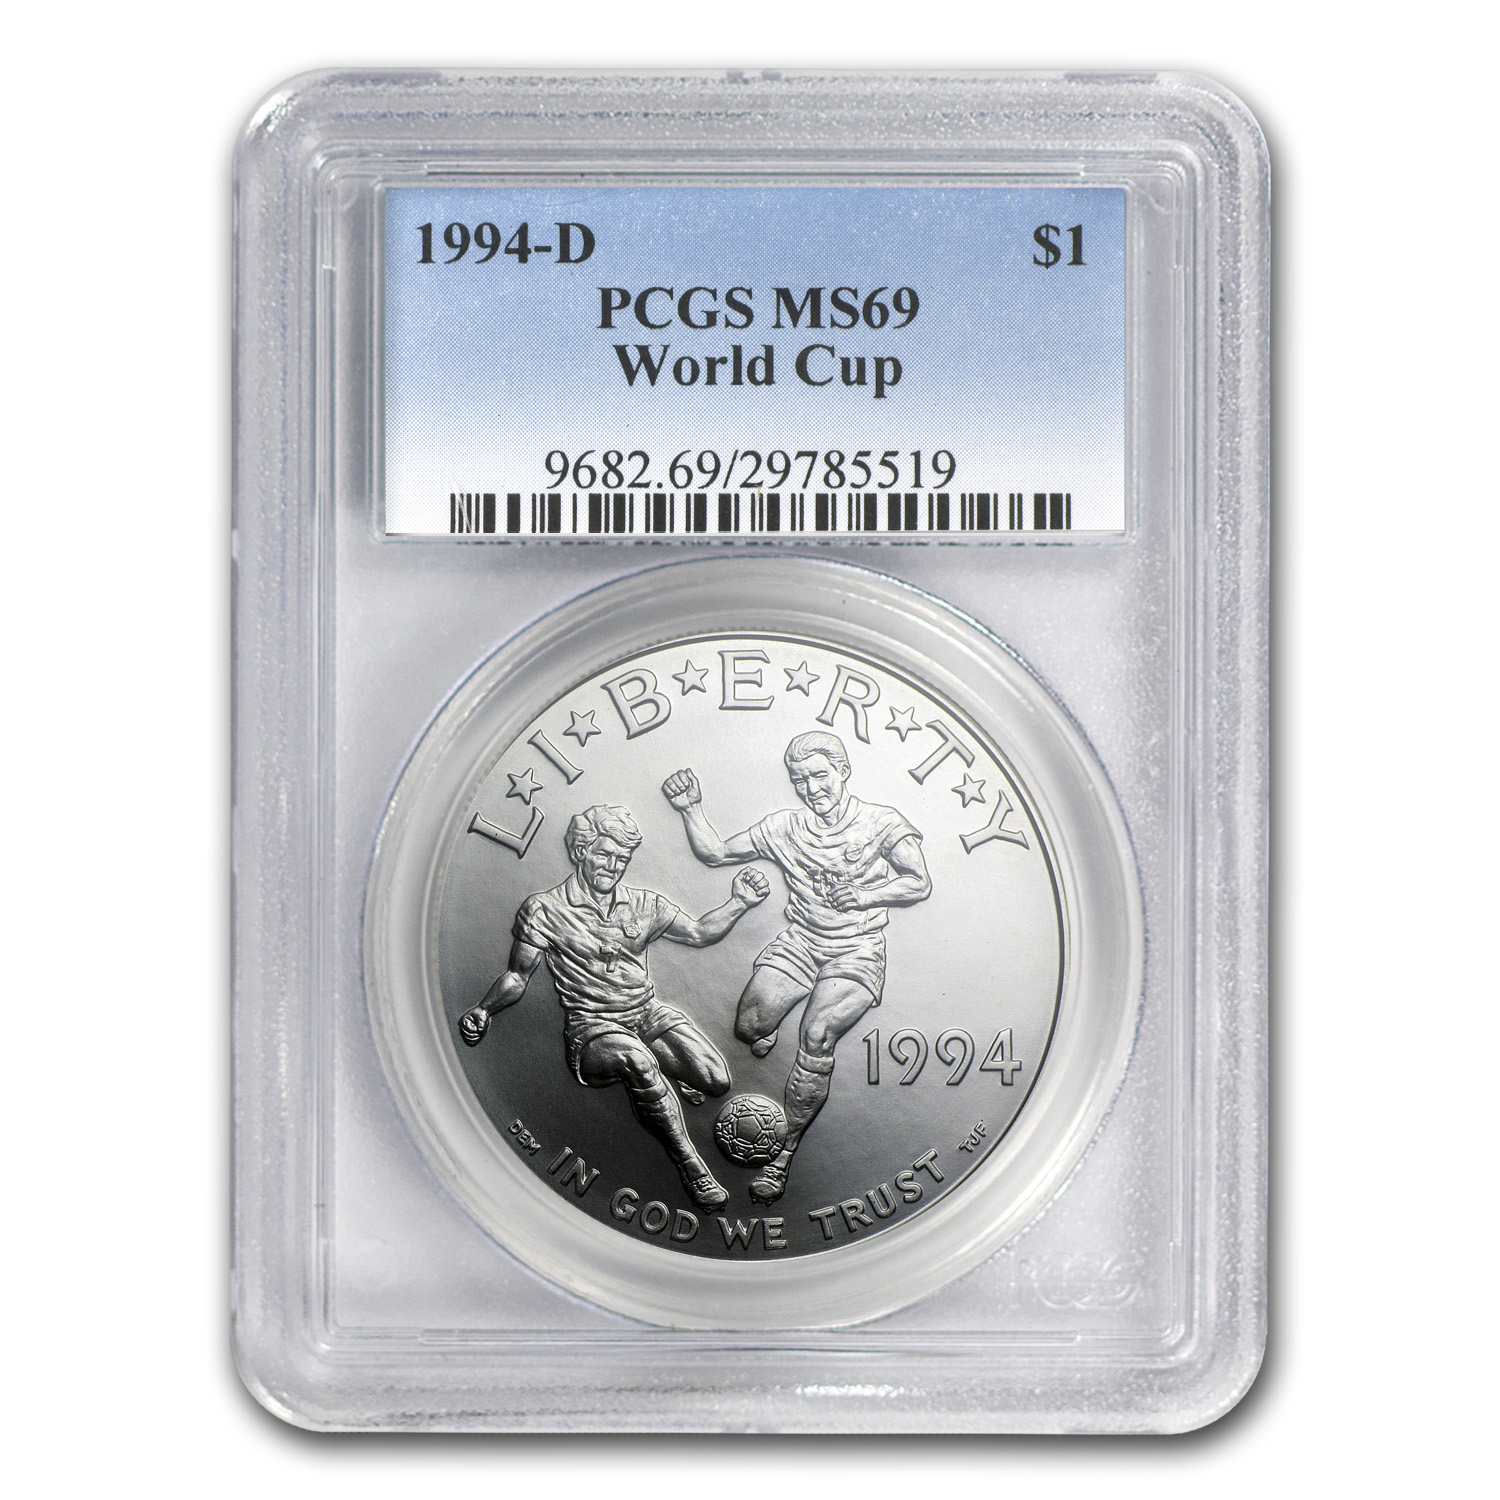 1994-D World Cup $1 Silver Commemorative MS-69 PCGS